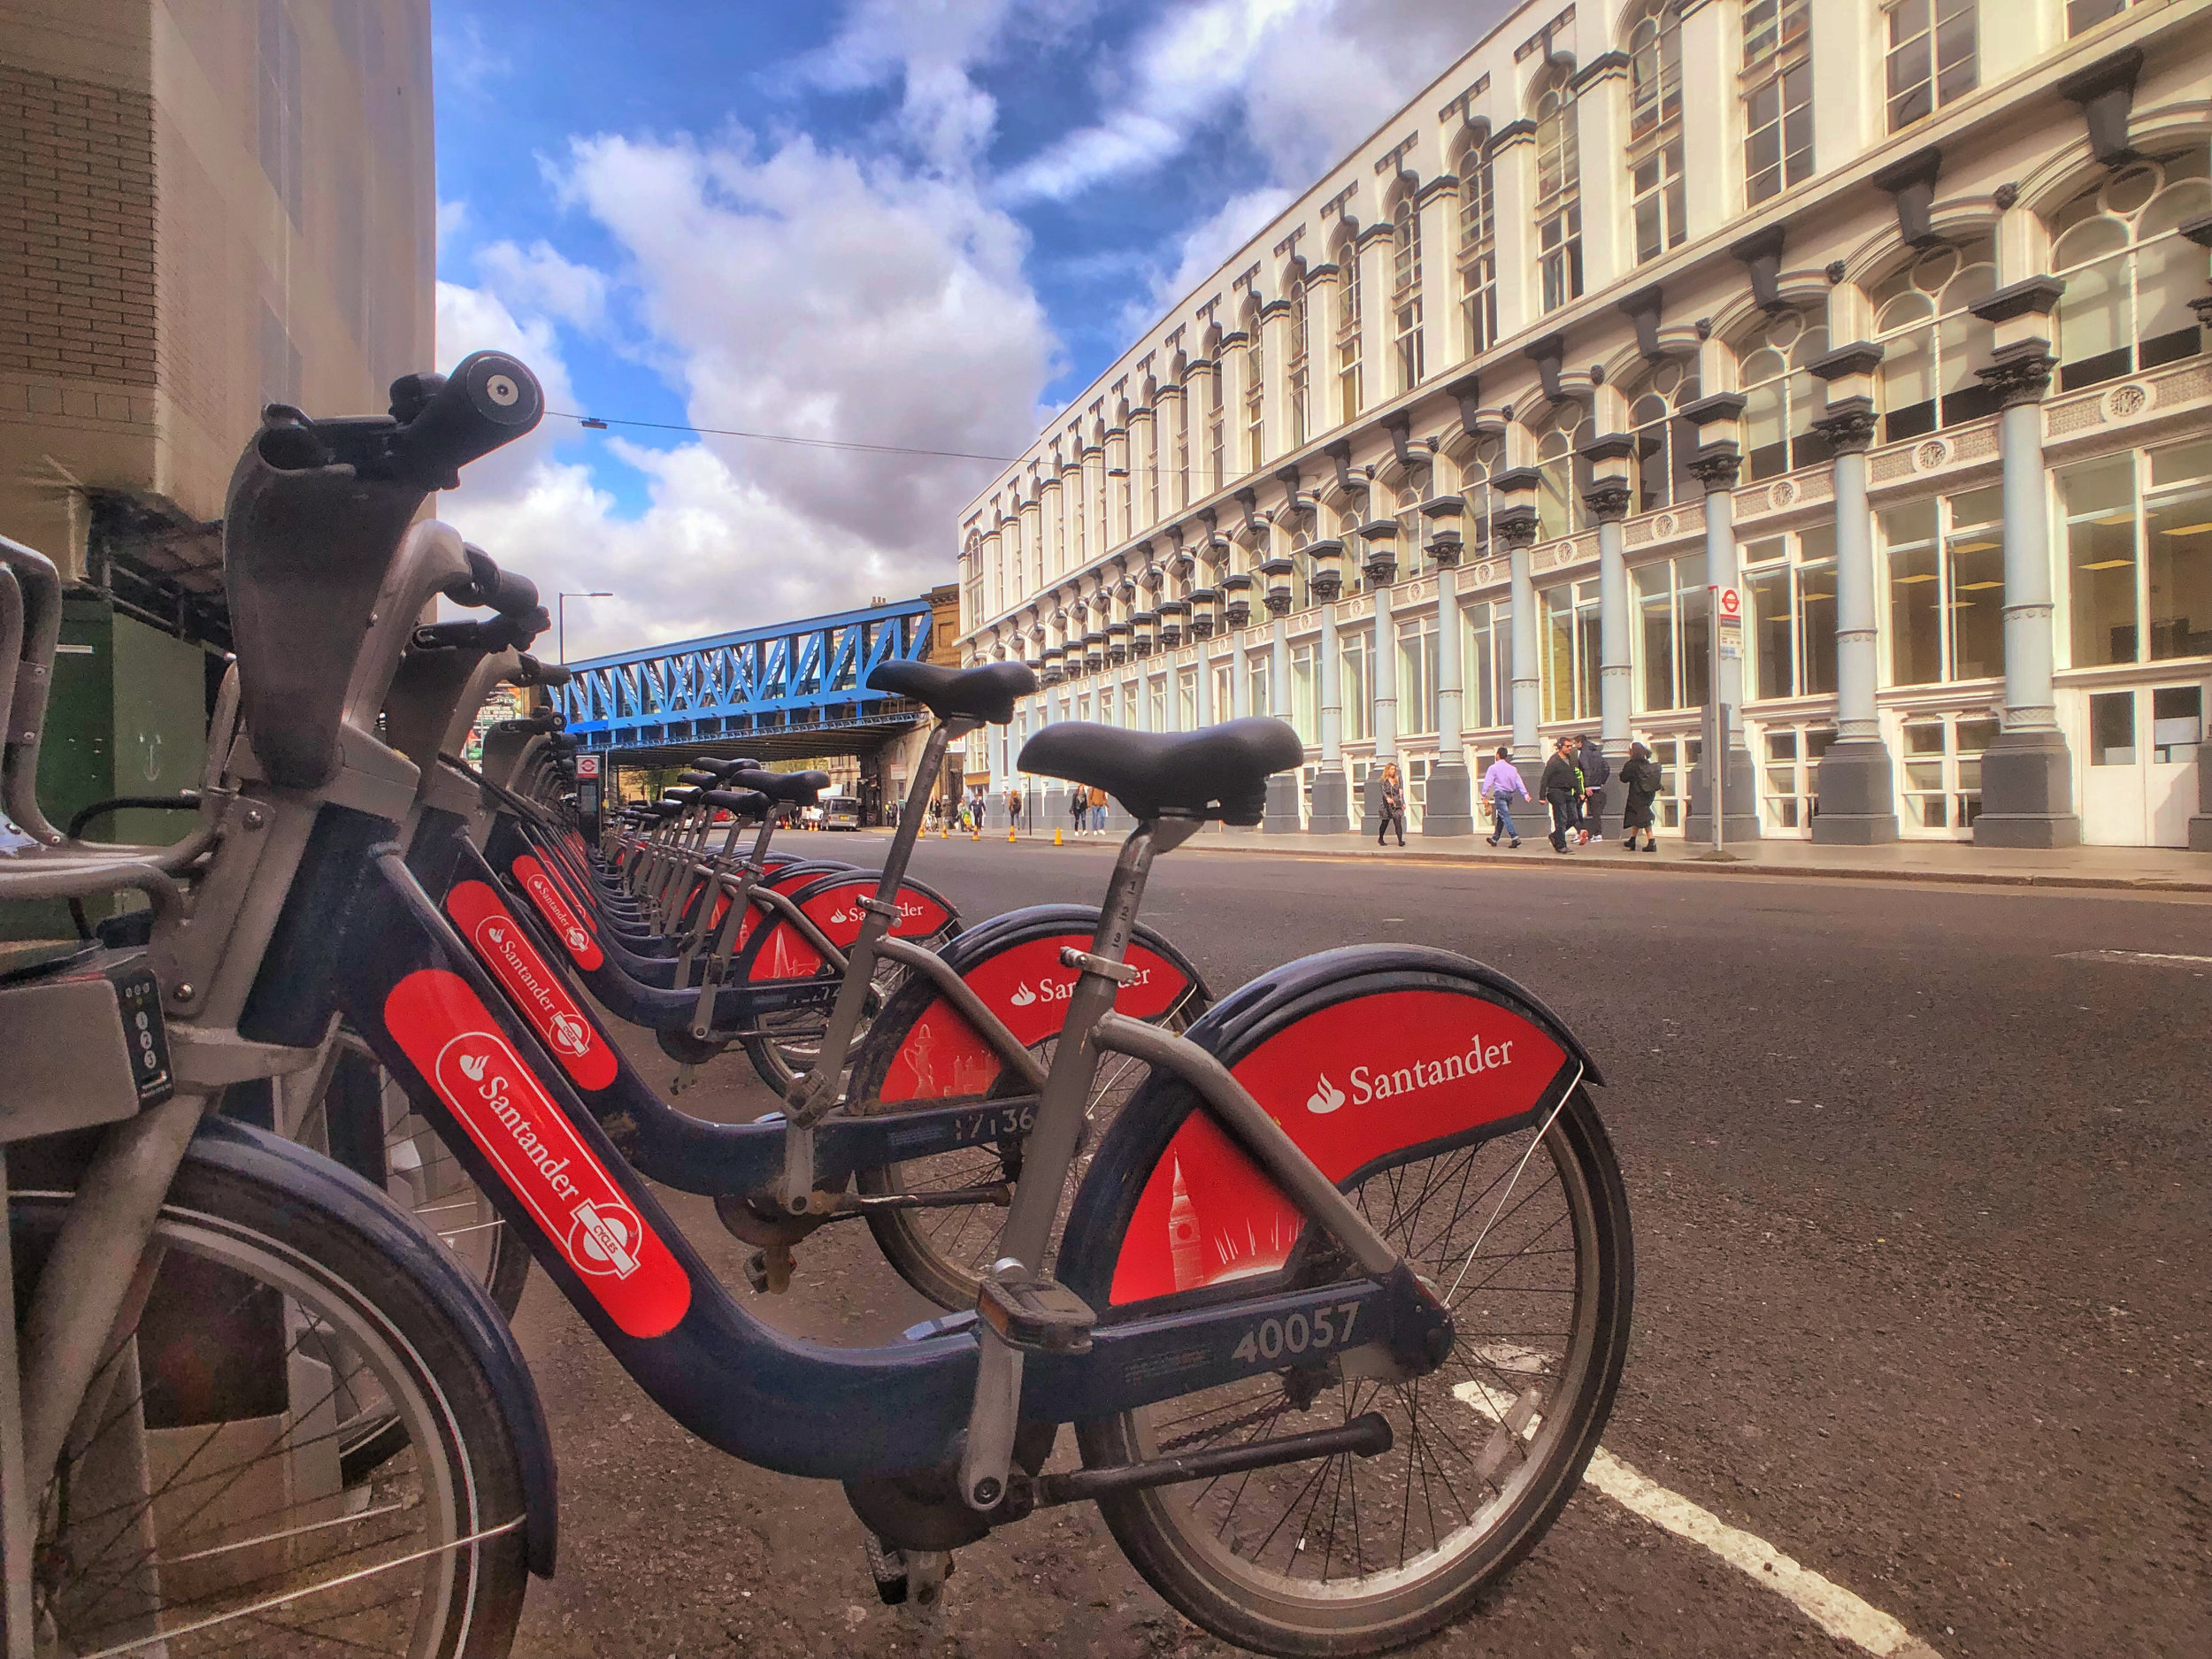 Rentable bikes in London